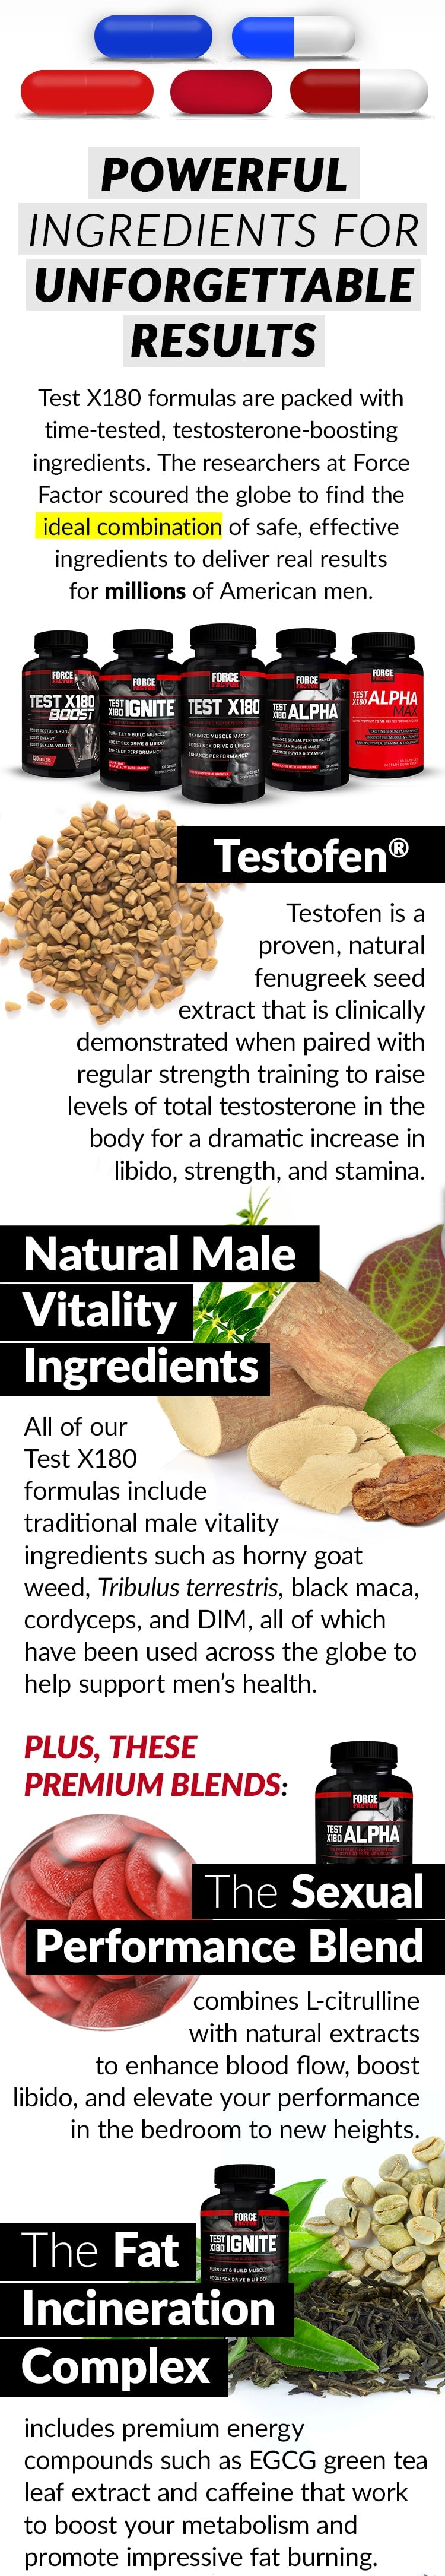 POWERFUL INGREDIENTS FOR UNFORGETTABLE RESULTS. Test X180 formulas are packed with time-tested, testosterone-boosting ingredients. The researchers at Force Factor scoured the globe to find the ideal combination of safe, effective ingredients to deliver real results for millions of American men. Testofen® - Testofen is a proven, natural fenugreek seed extract that is clinically demonstrated when paired with regular strength training to raise levels of total testosterone in the body for a dramatic increase in libido, strength, and stamina. Natural Male Vitality Ingredients - All of our Test X180 formulas include traditional male vitality ingredients such as horny goat weed, tribulus terrestris, black maca, cordyceps, and DIM, all of which have been used across the globe to help support men's health. PLUS, THESE PREMIUM BLENDS: The Sexual Performance Blend combines L-citrulline with natural extracts to enhance blood flow, boost libido, and elevate your performance in the bedroom to new heights. The Fat Incineration Complex includes premium energy compounds such as EGCG green tea leaf extract and caffeine that work to boost your metabolism and promote impressive fat burning.